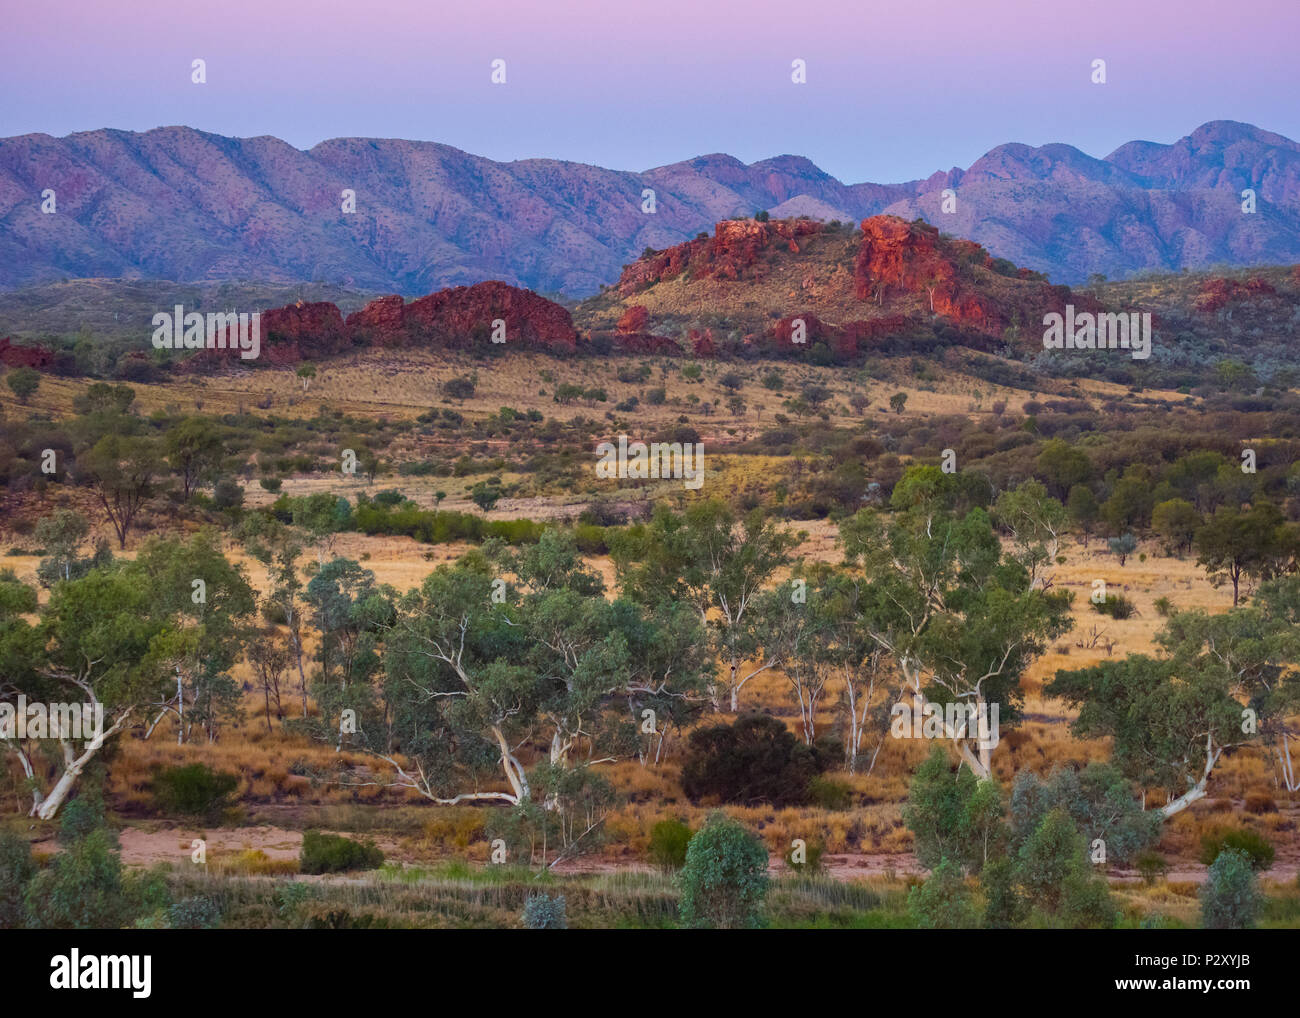 Twilight in Australia's West Macdonnell Ranges, which is a popular destination for tourists and Australian residents alike. - Stock Image